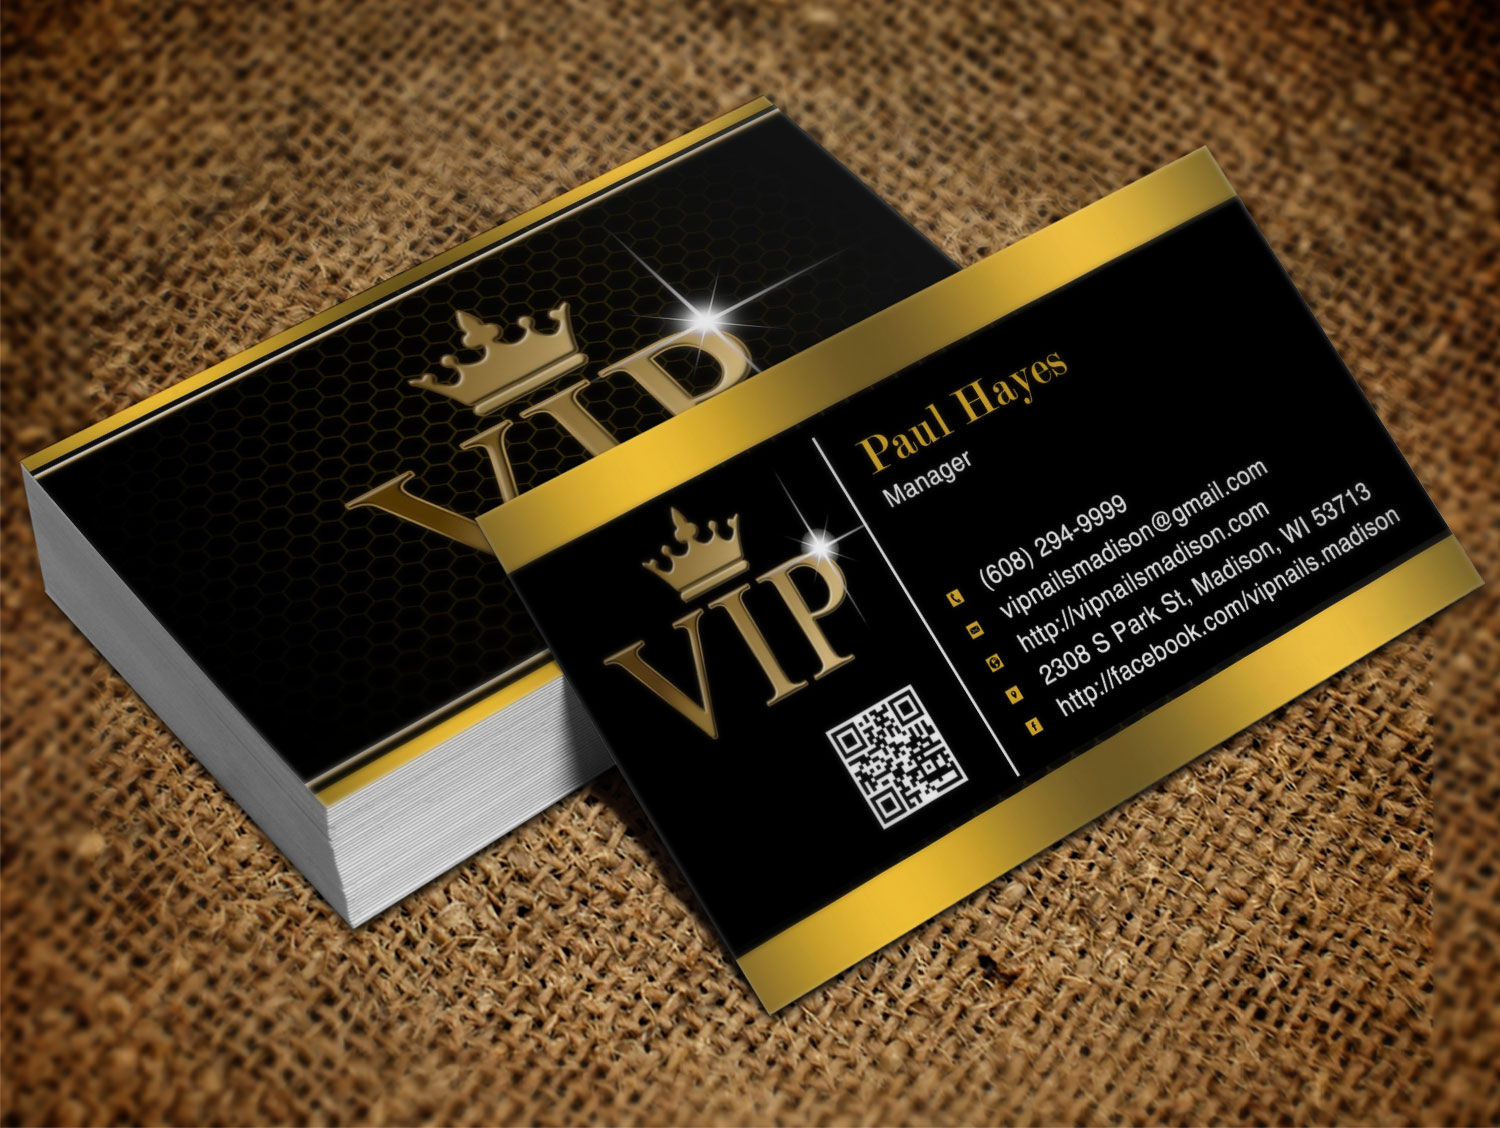 Elegant playful business card design for vip nails spa by lanka business card design by lanka ama for vip nails spa business card for nail reheart Choice Image